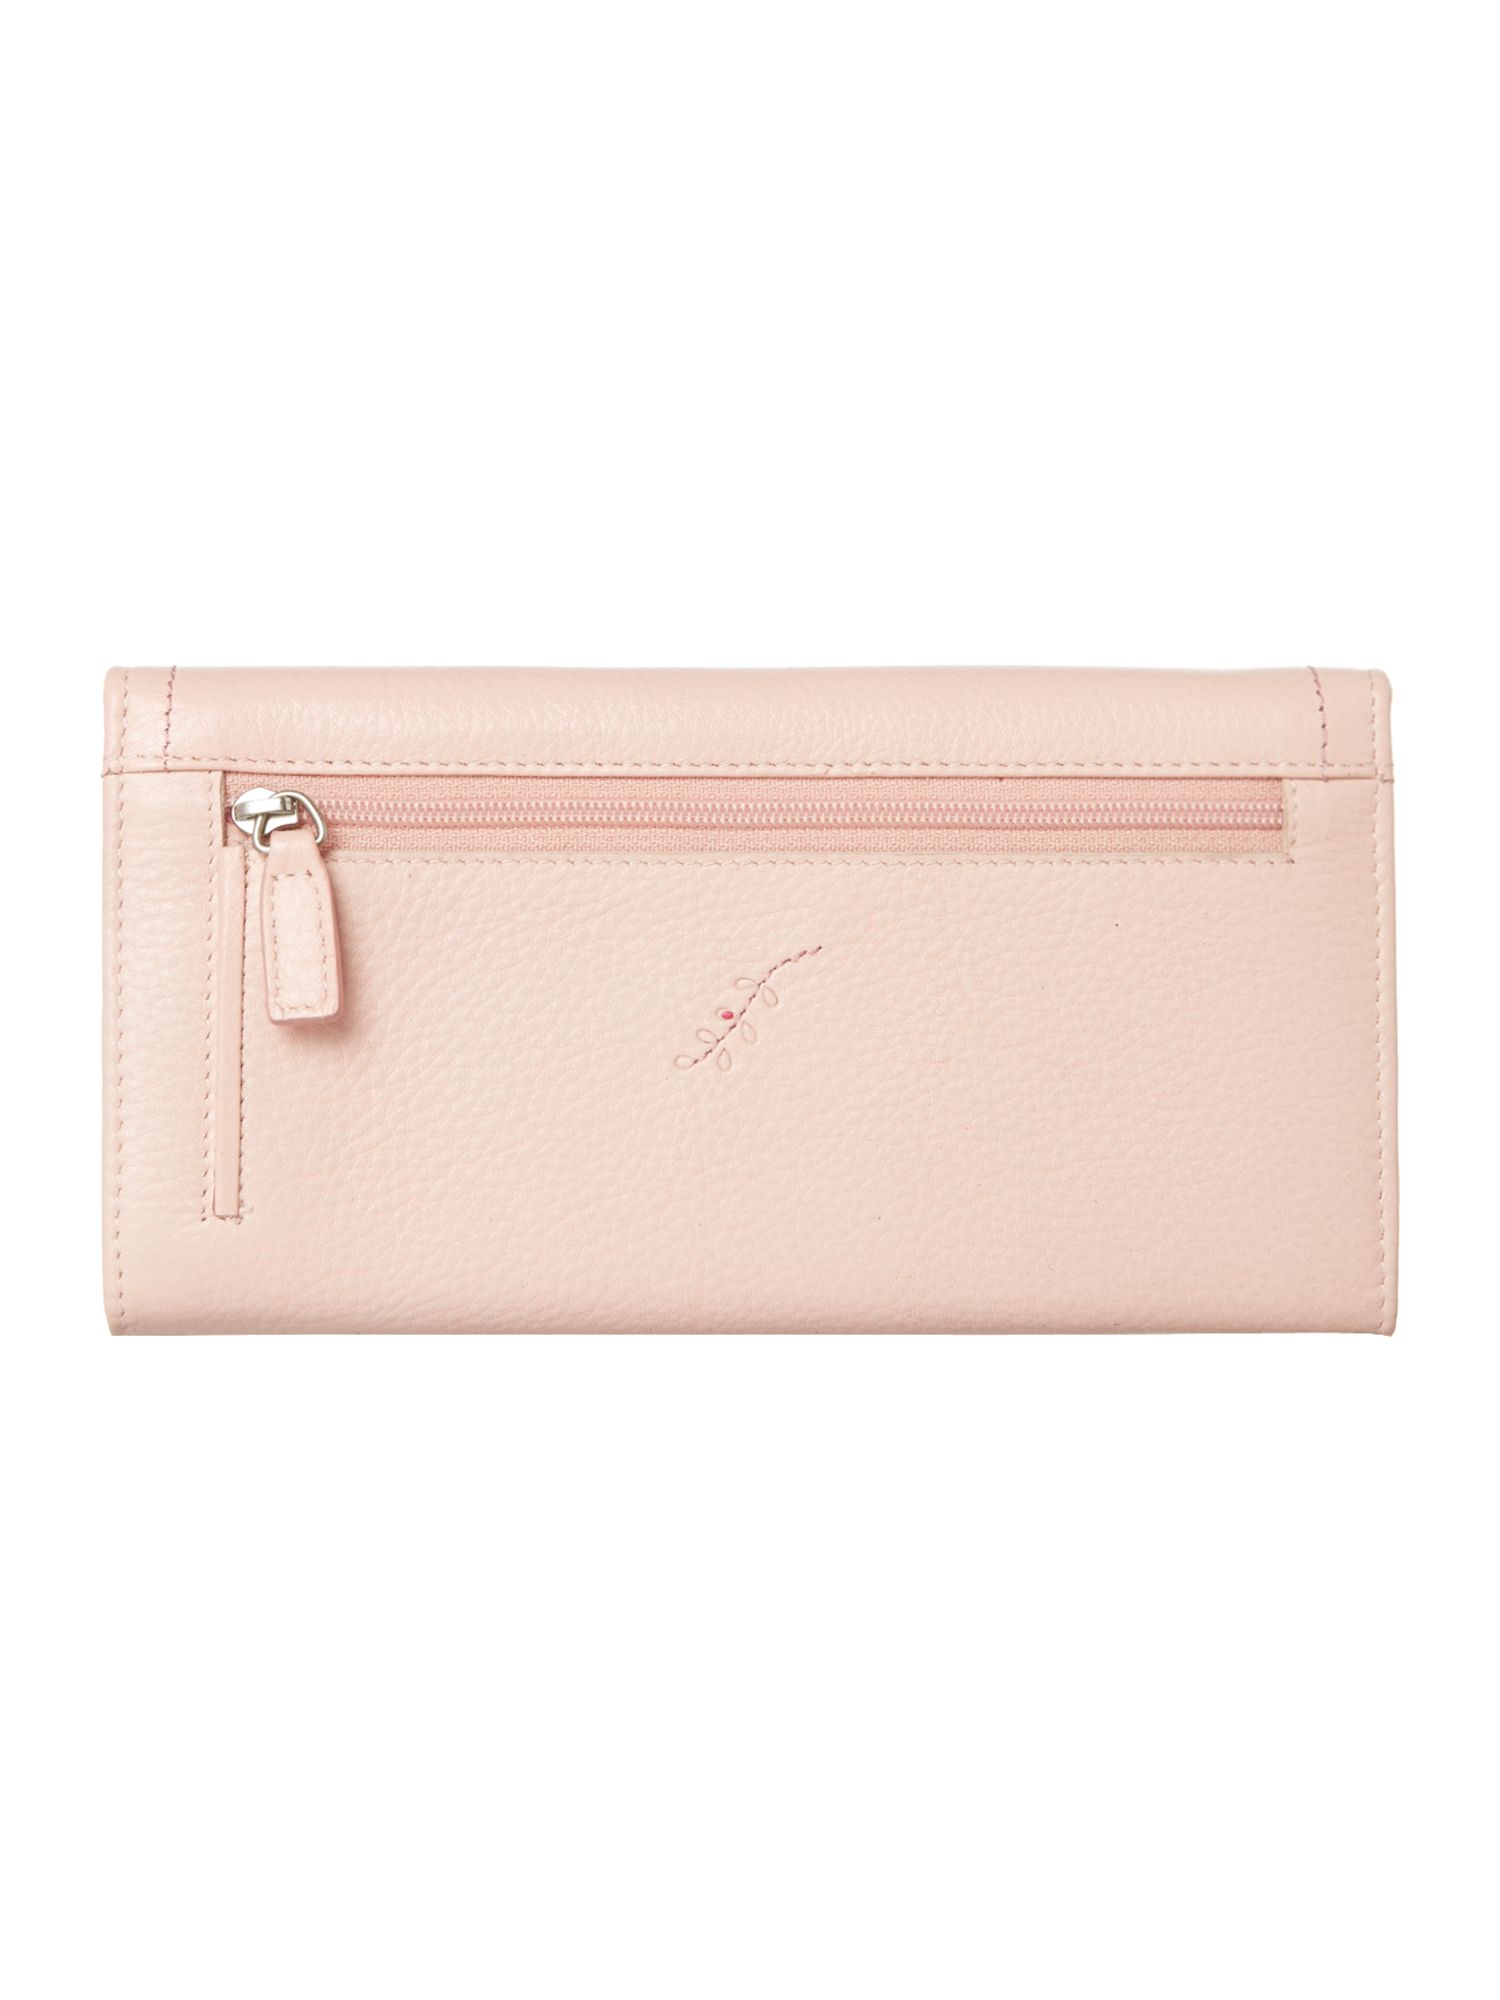 Pink large flapover purse